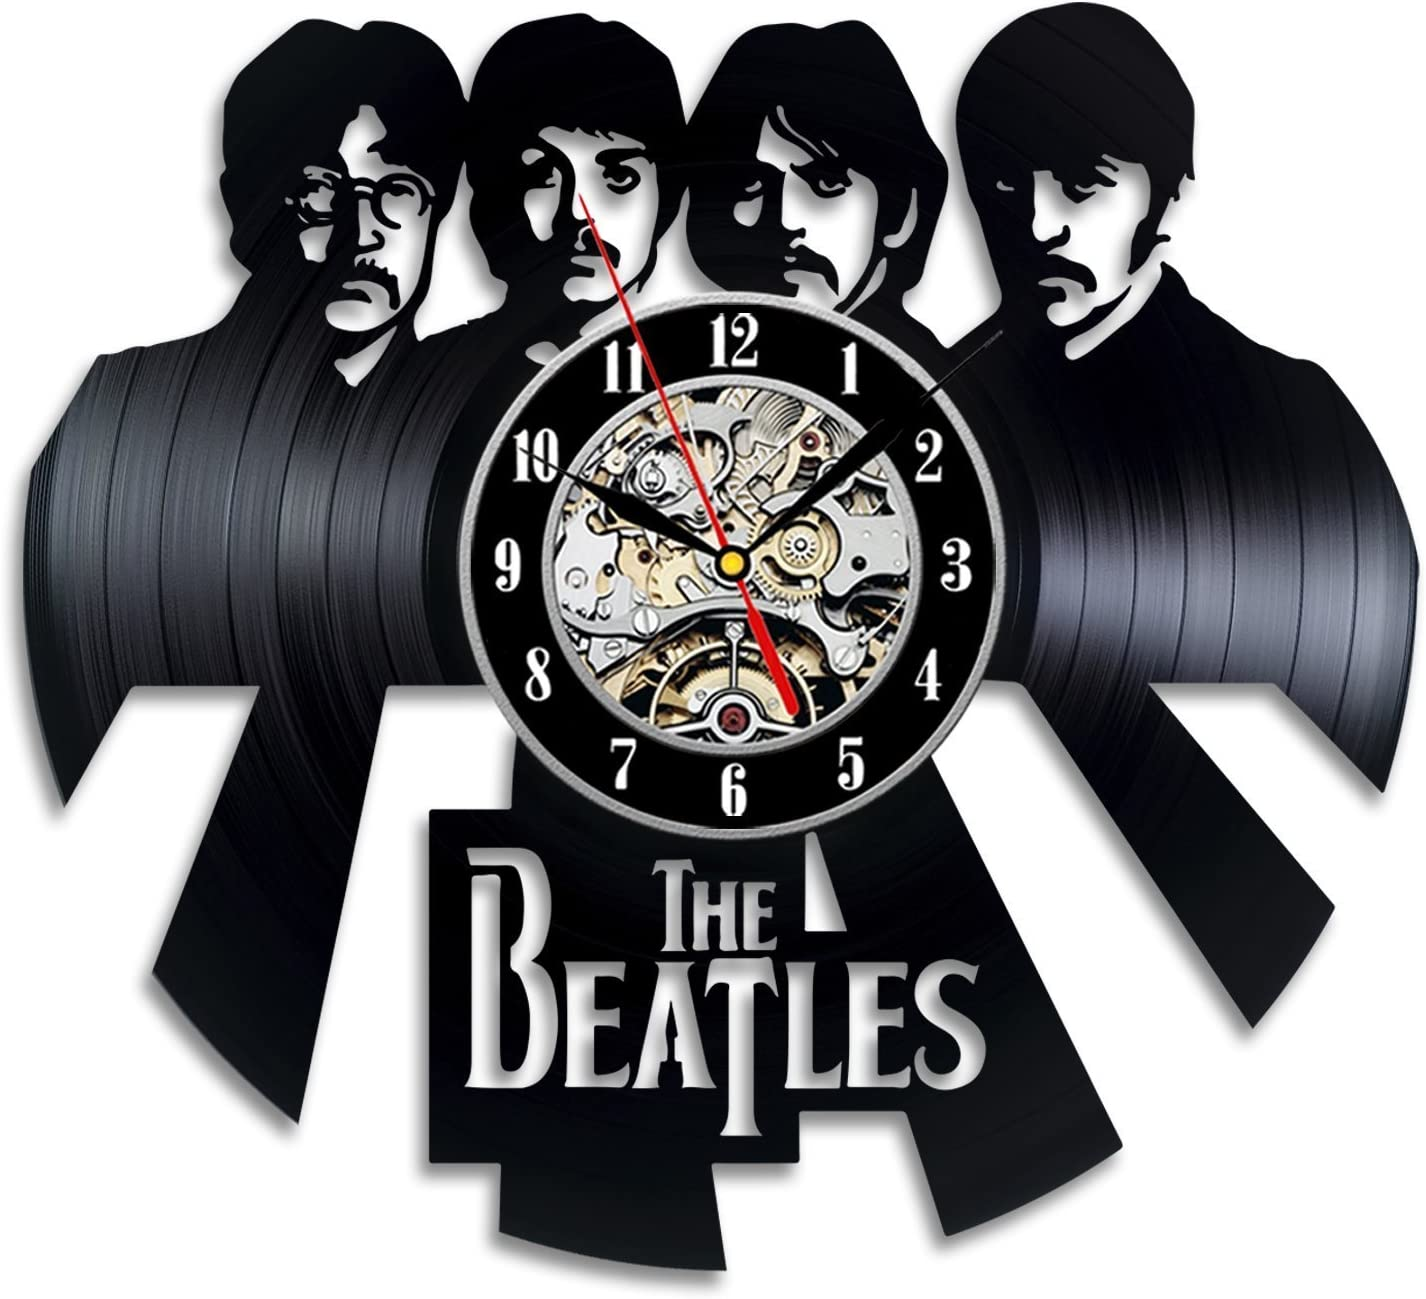 Beatles Band Design Wall Clock Made from Used Vinyl Record - Get Unique Home Room Wall Decor - Gift Ideas for Boys and Girls – Unique Music Fan Art